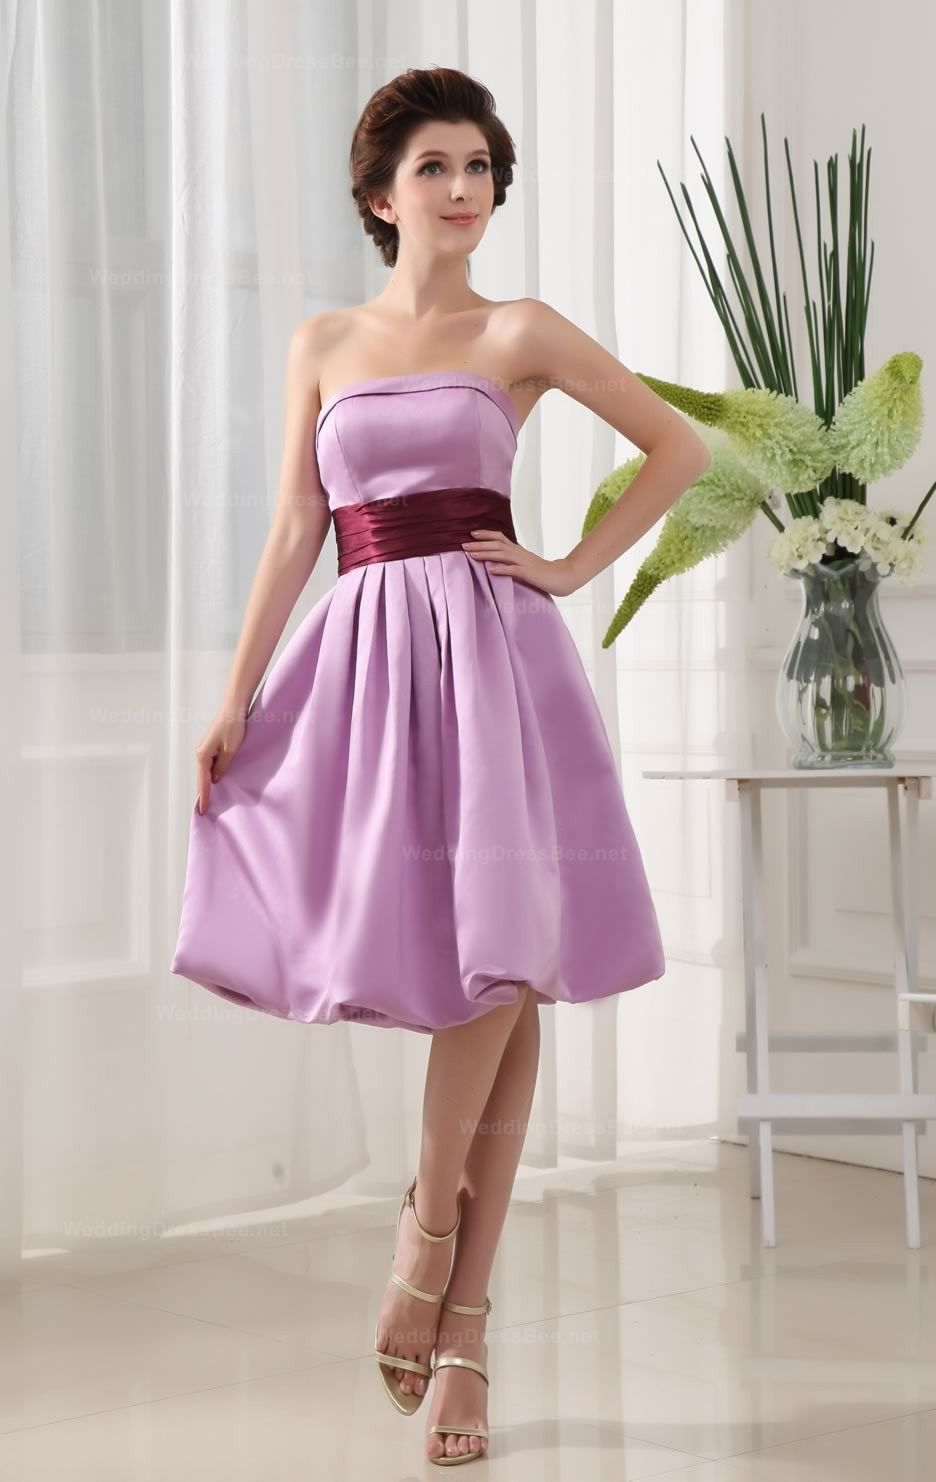 Strapless+With+Empire+Waist+Full+A-Line+Knee-Length+Dress+For+Bridesmaids $128.98